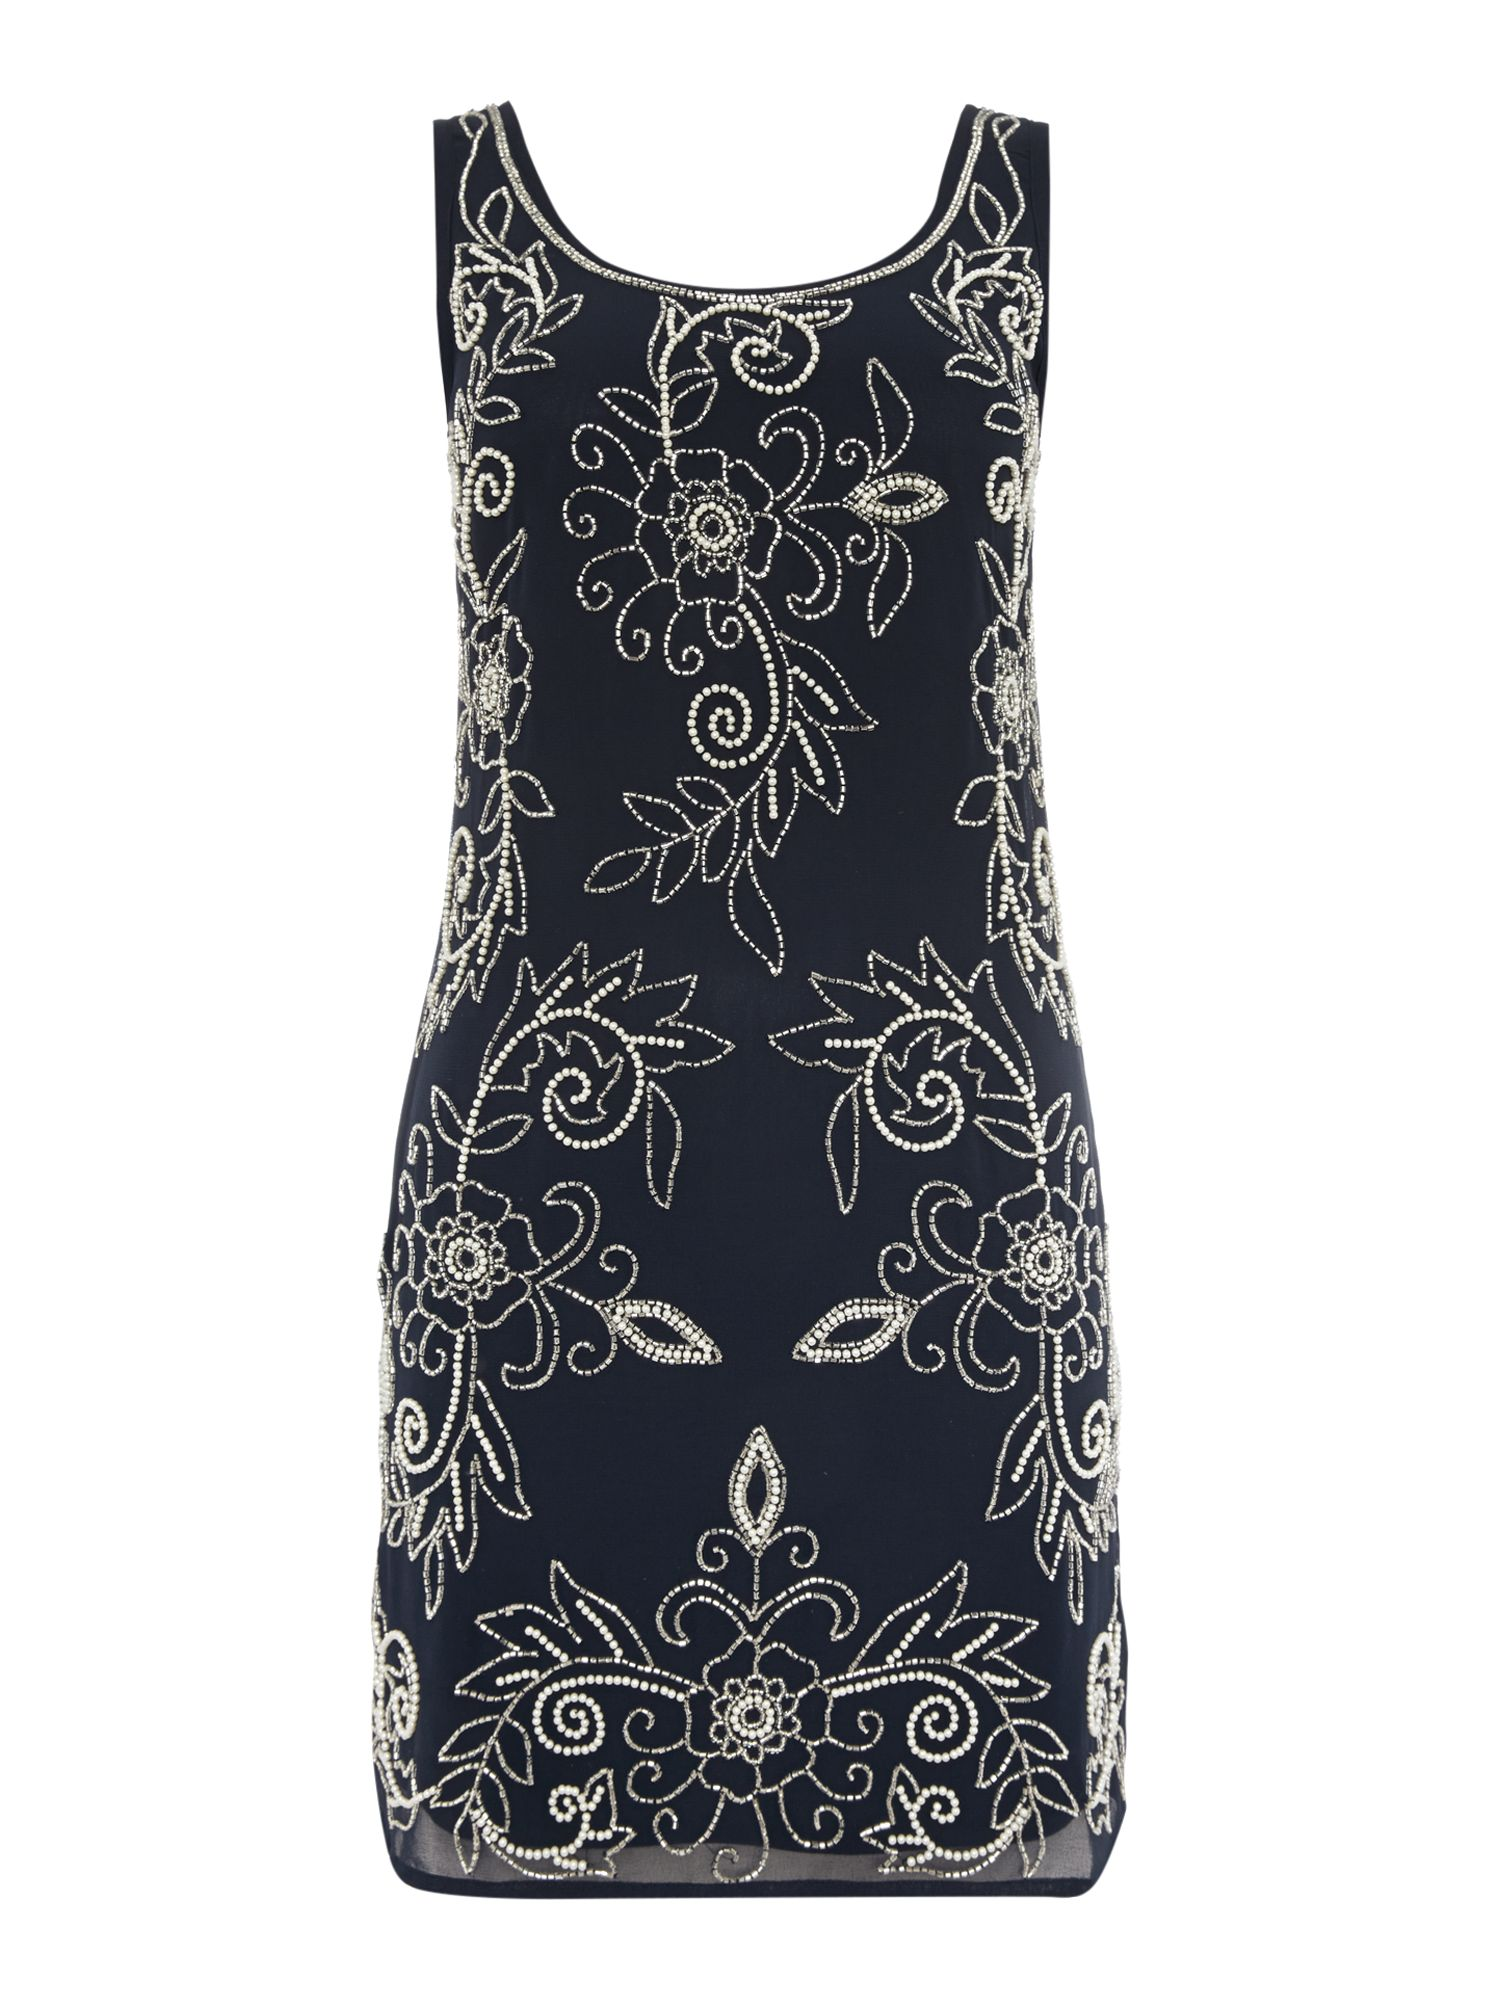 Lace and Beads Sleeveless Round Neck Beaded Shift Dress Navy £37.50 AT vintagedancer.com